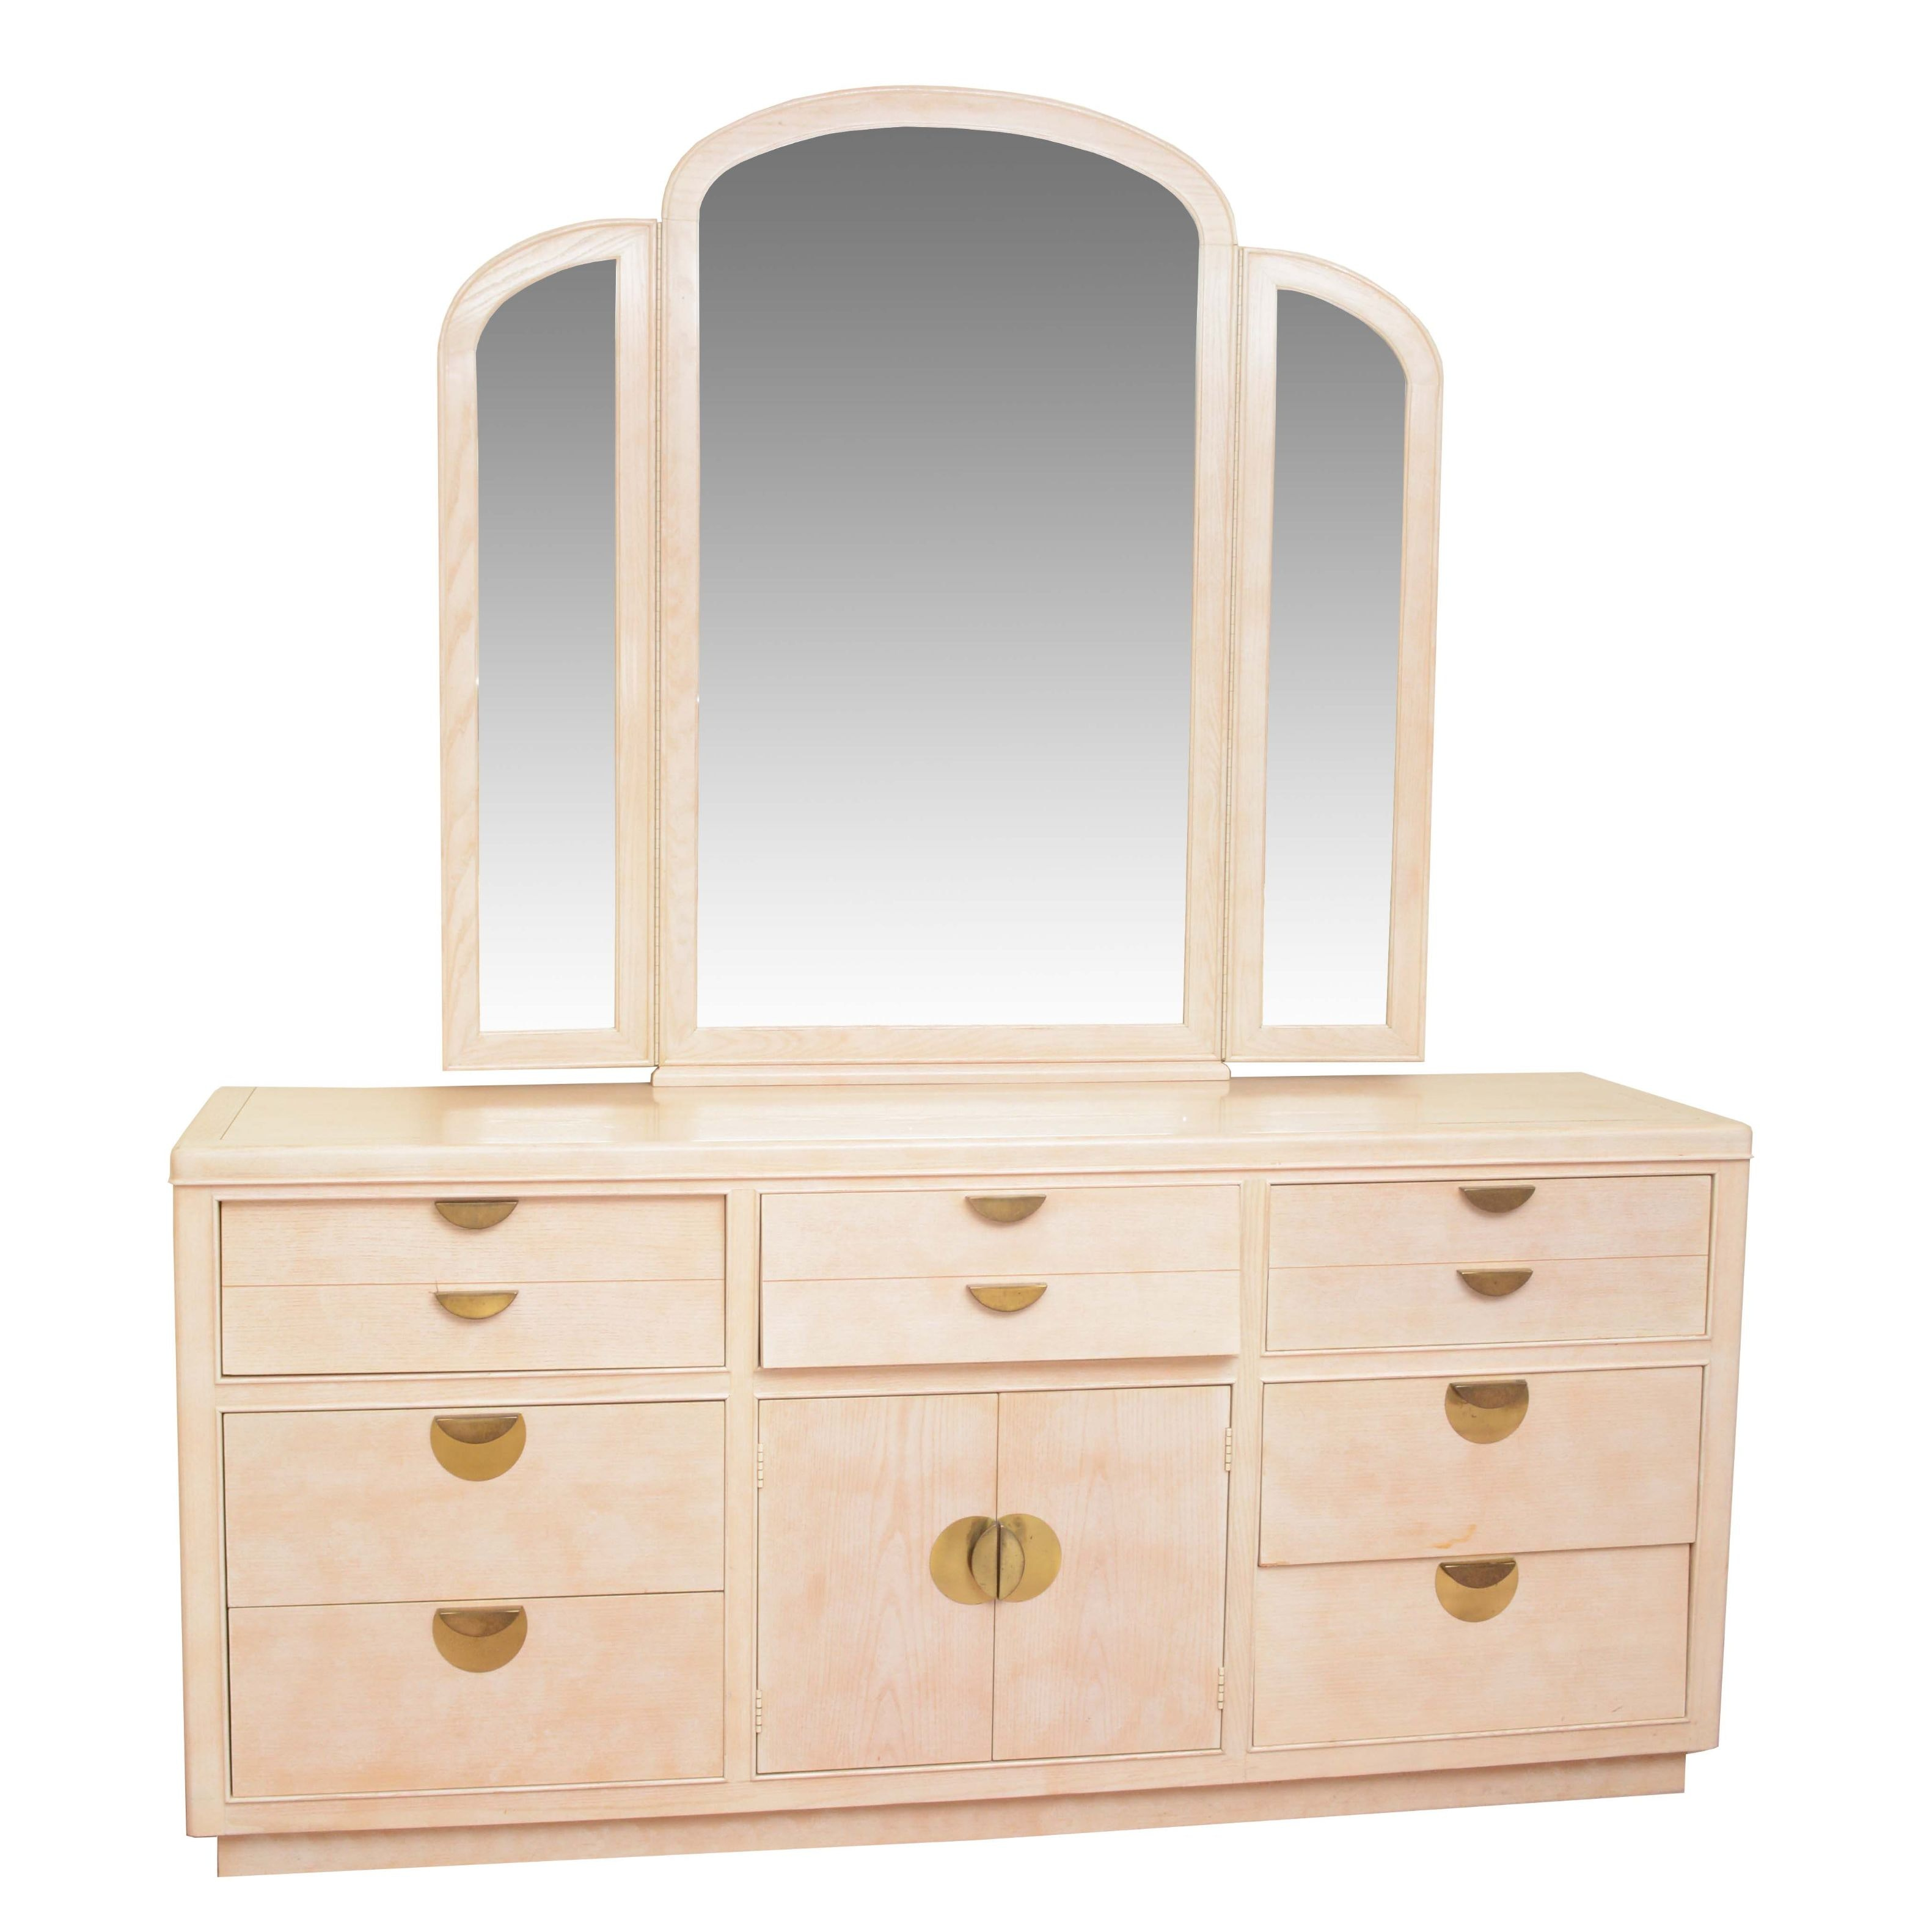 Deco Revival Style Dresser with Adjustable Mirror